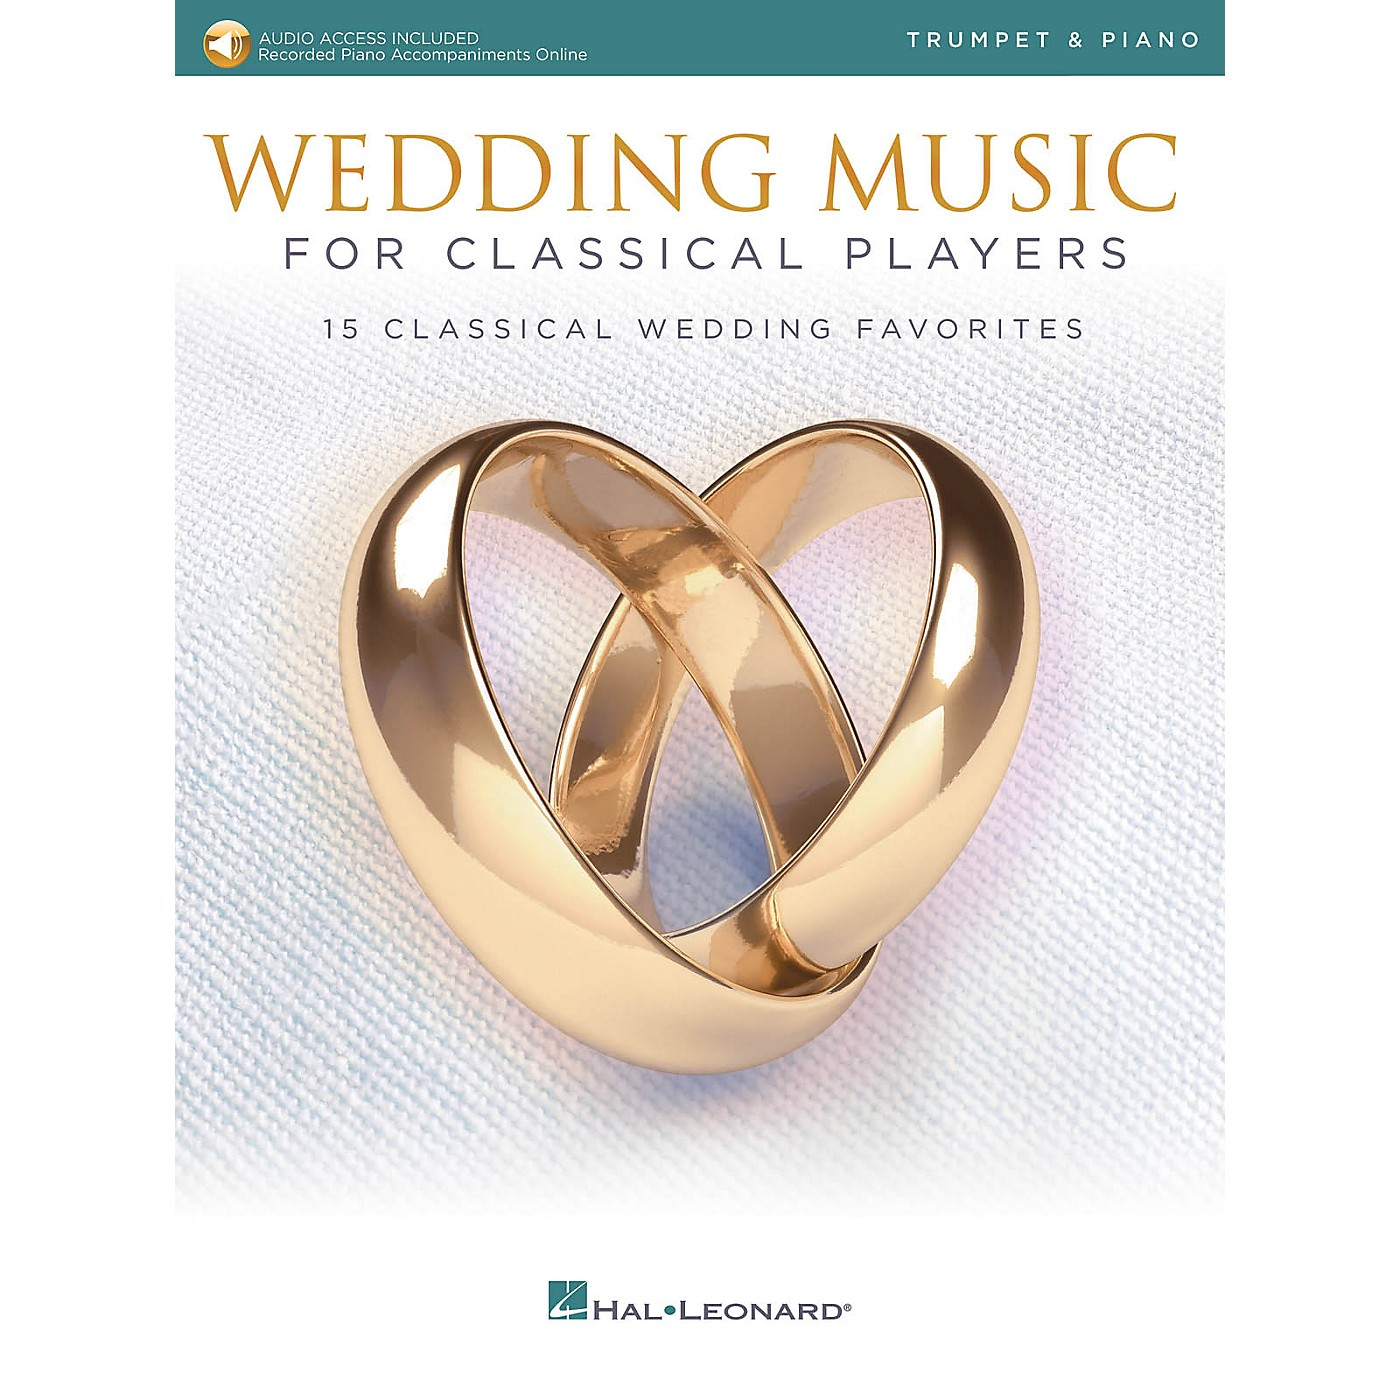 Hal Leonard Wedding Music for Classical Players - Trumpet and Piano Book/Audio Online thumbnail